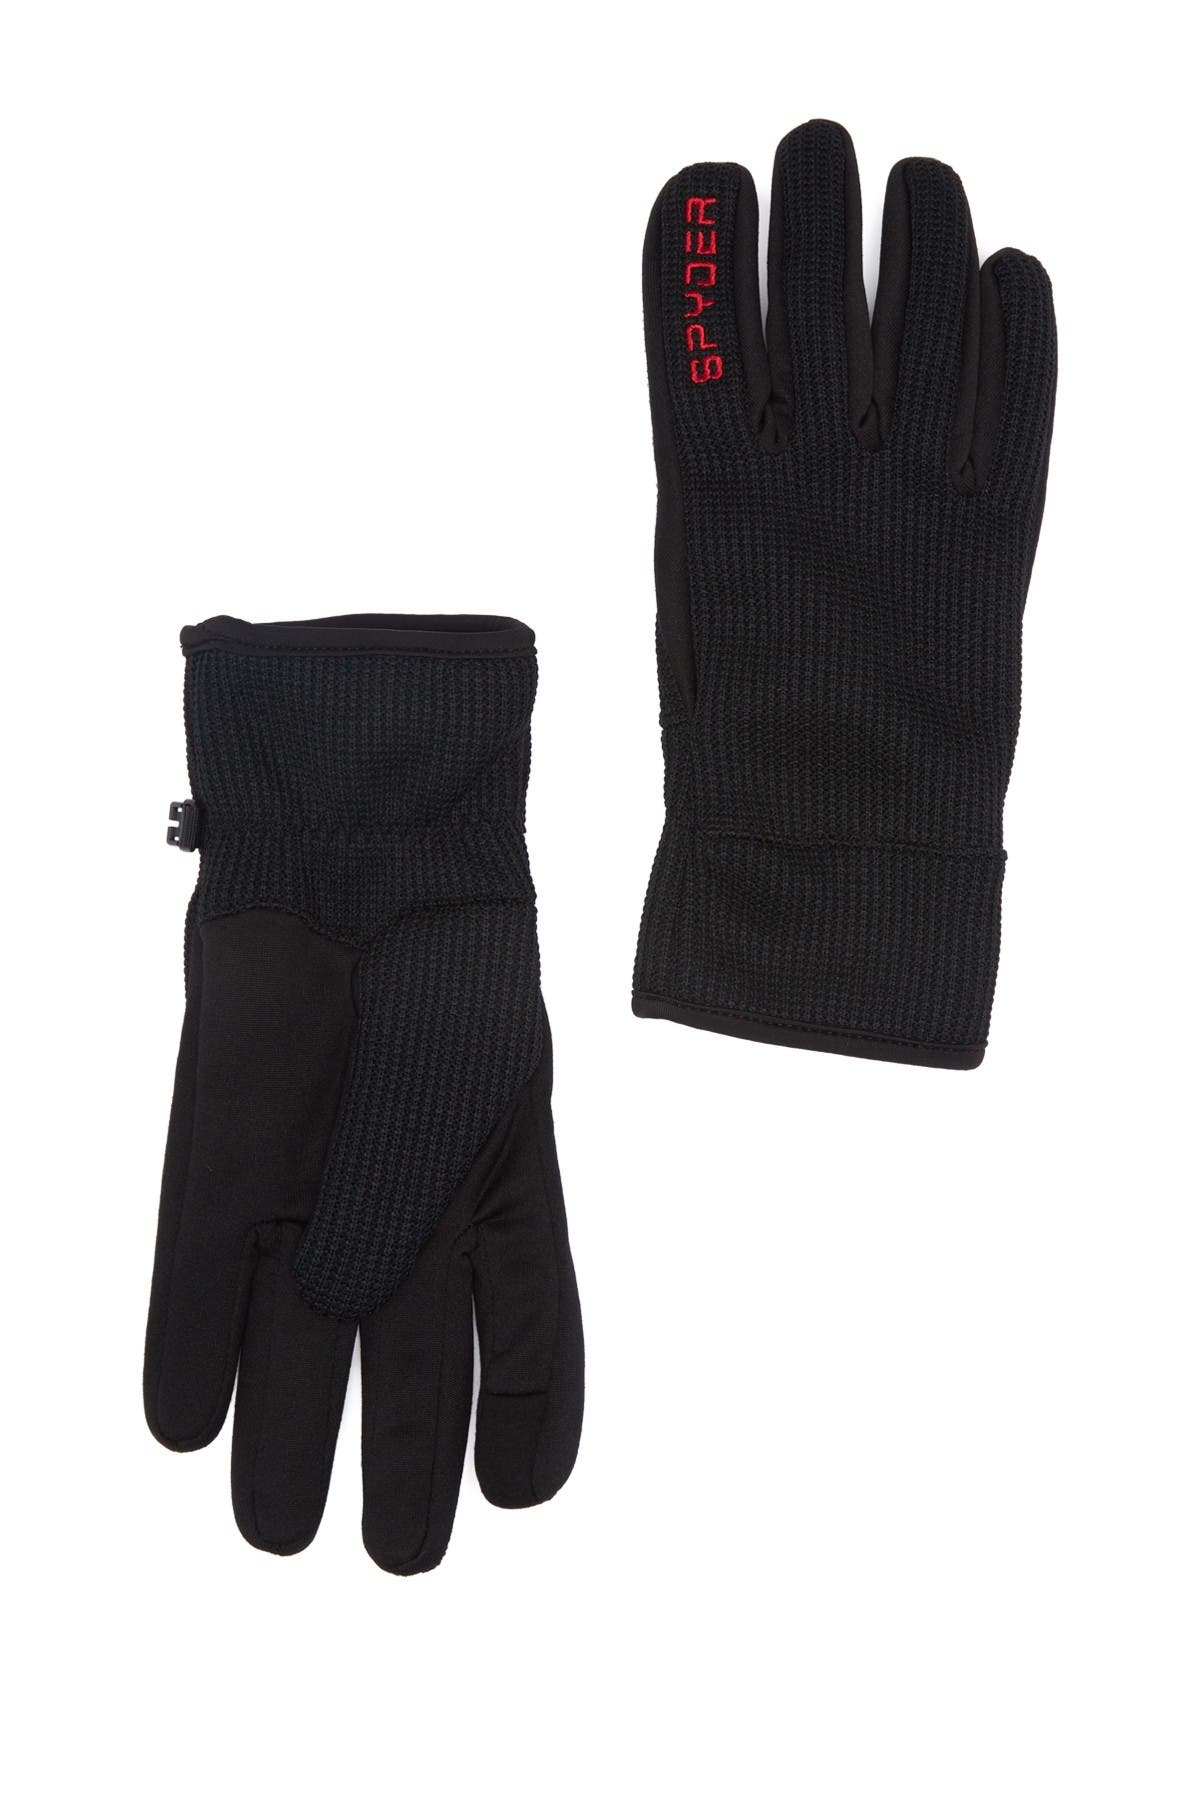 Image of SPYDER Unisex Core Conduct Touchscreen Gloves